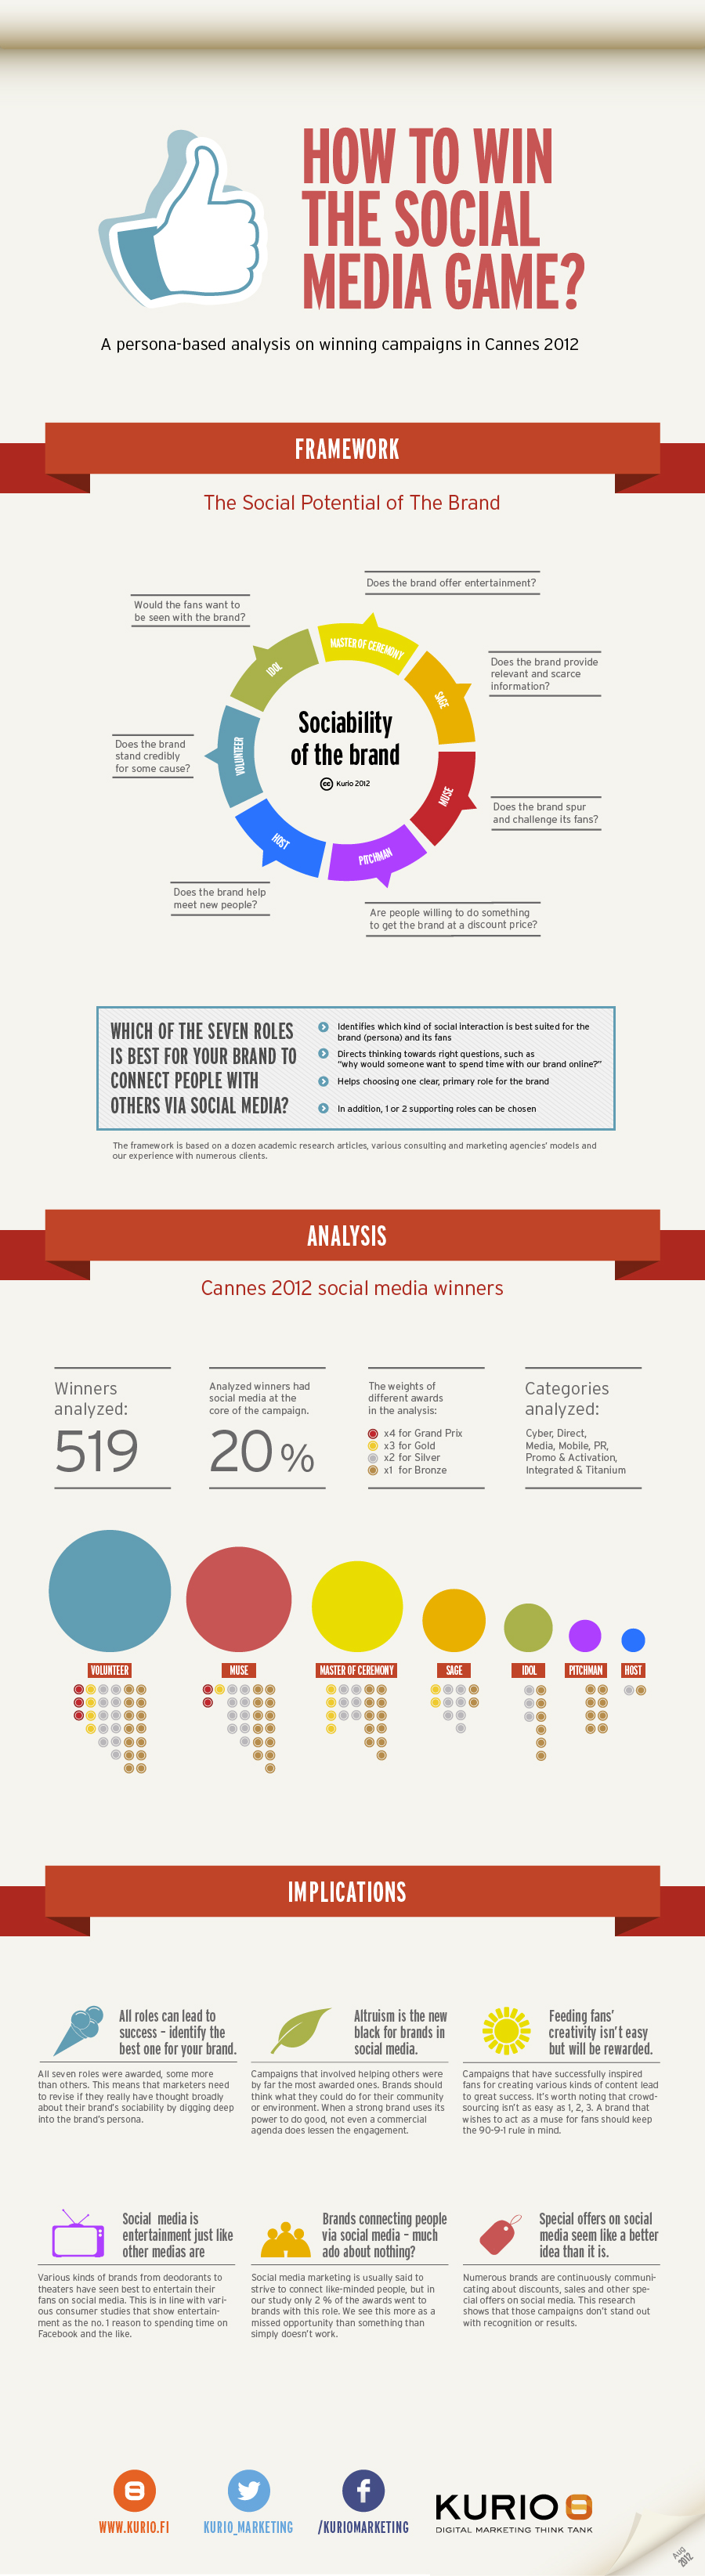 How to win the social media game